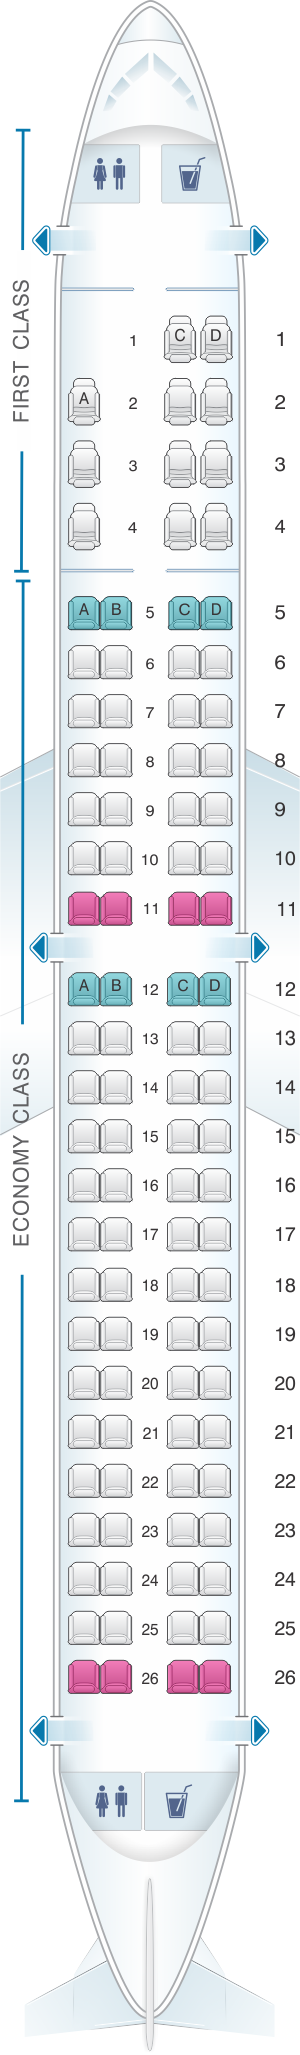 Seat map for American Airlines Embraer ERJ 190